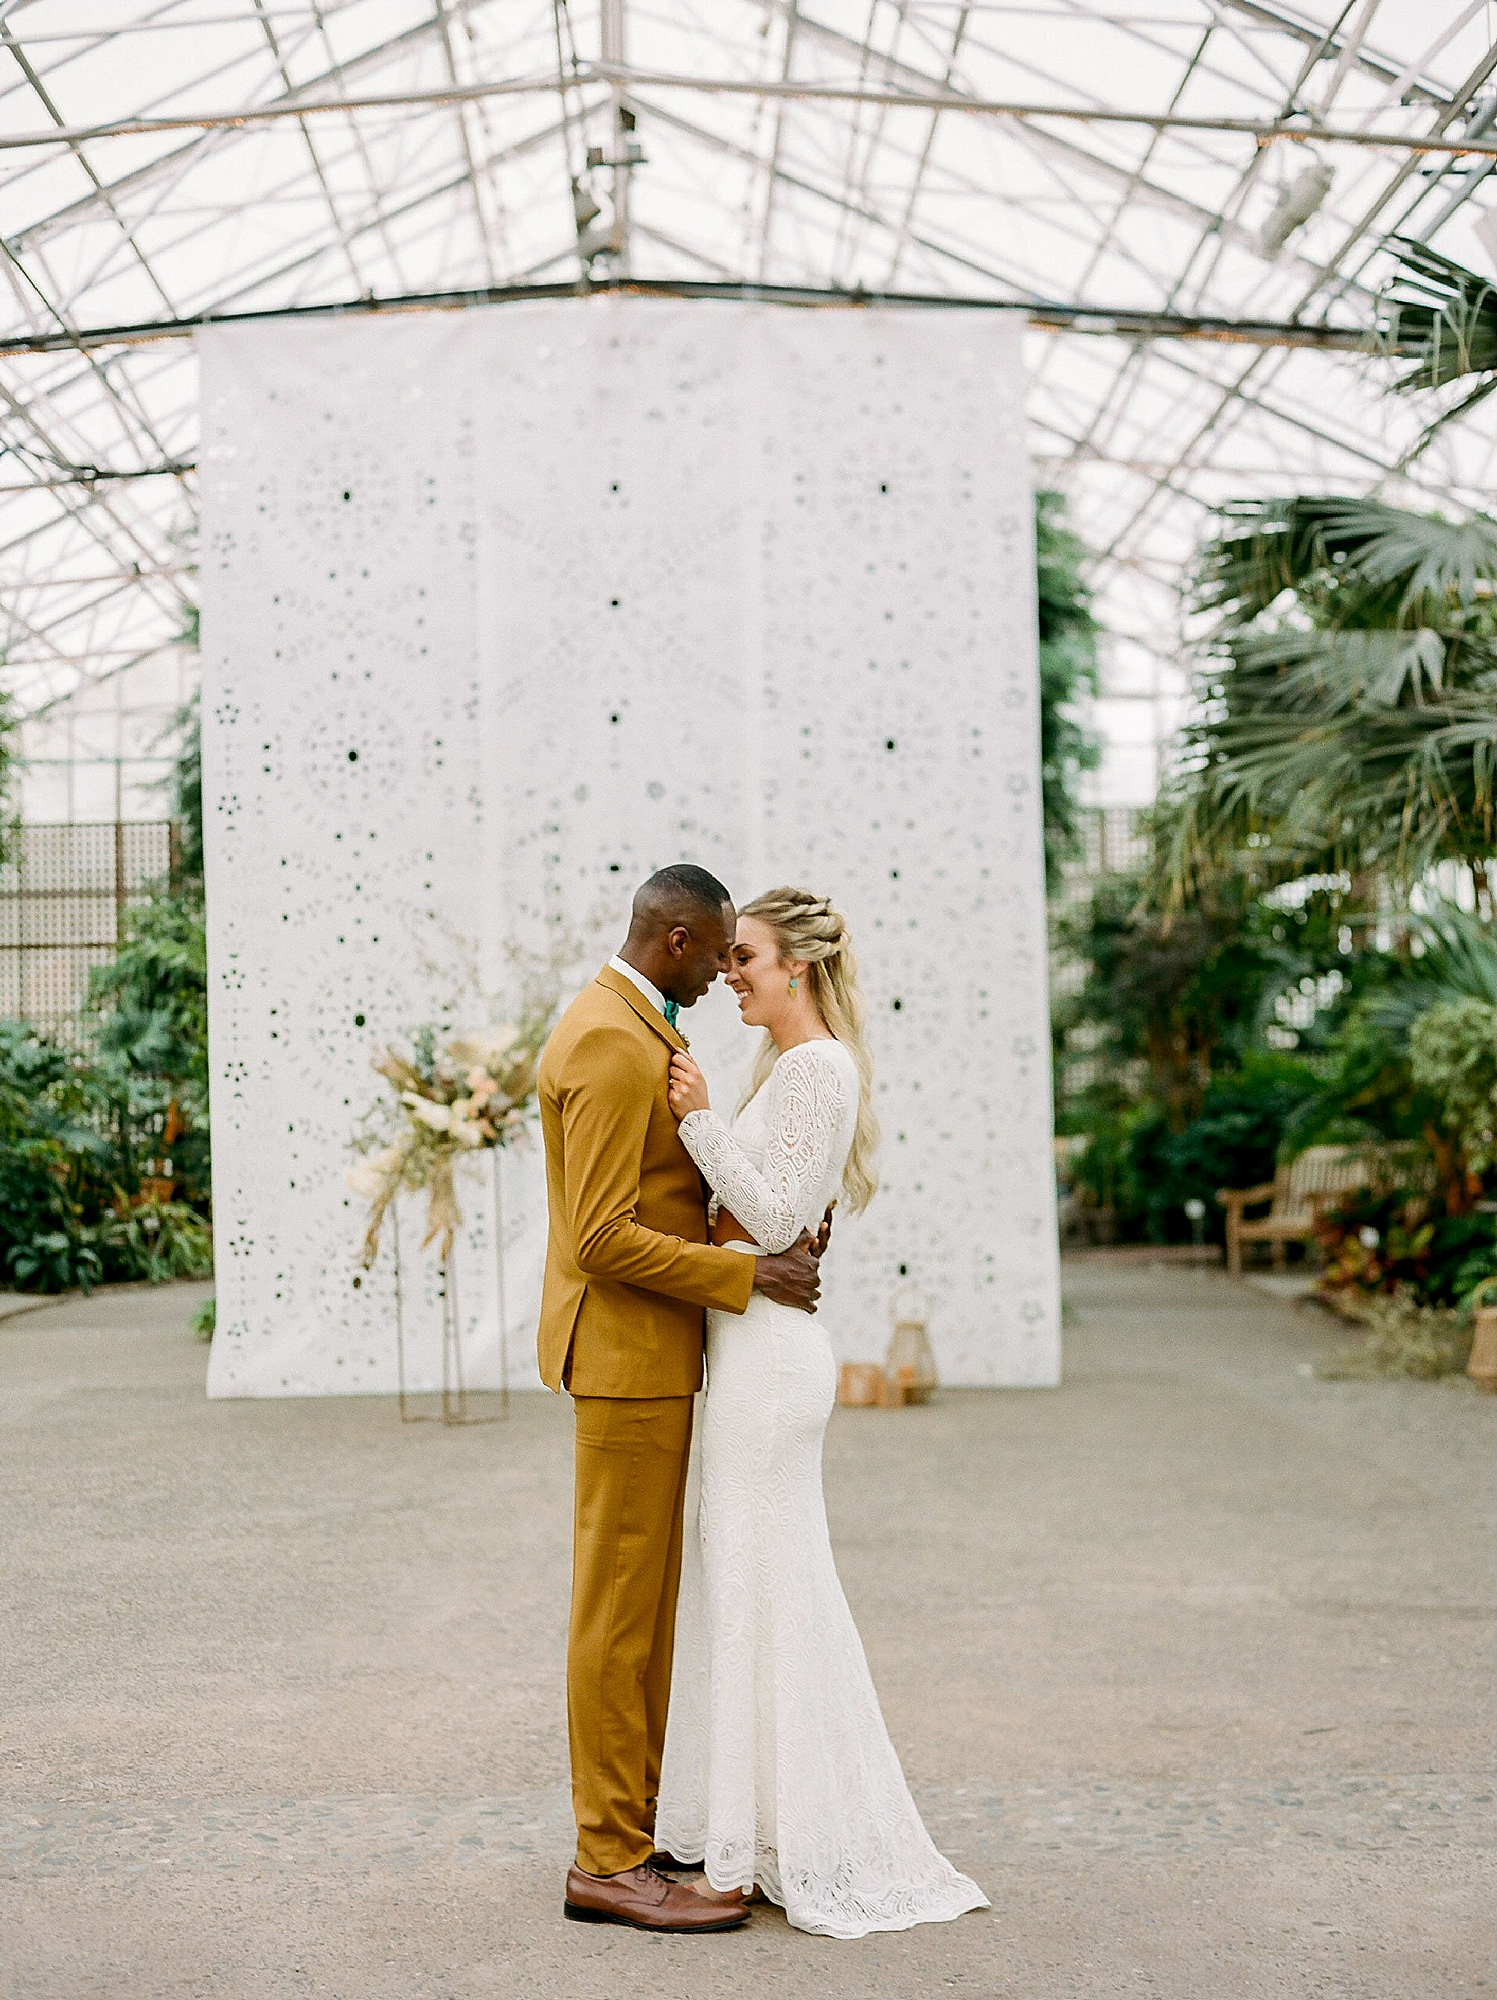 Colorful and Vibrant Wedding Photography at Fairmount Horticultural Center by Magdalena Studios 0030